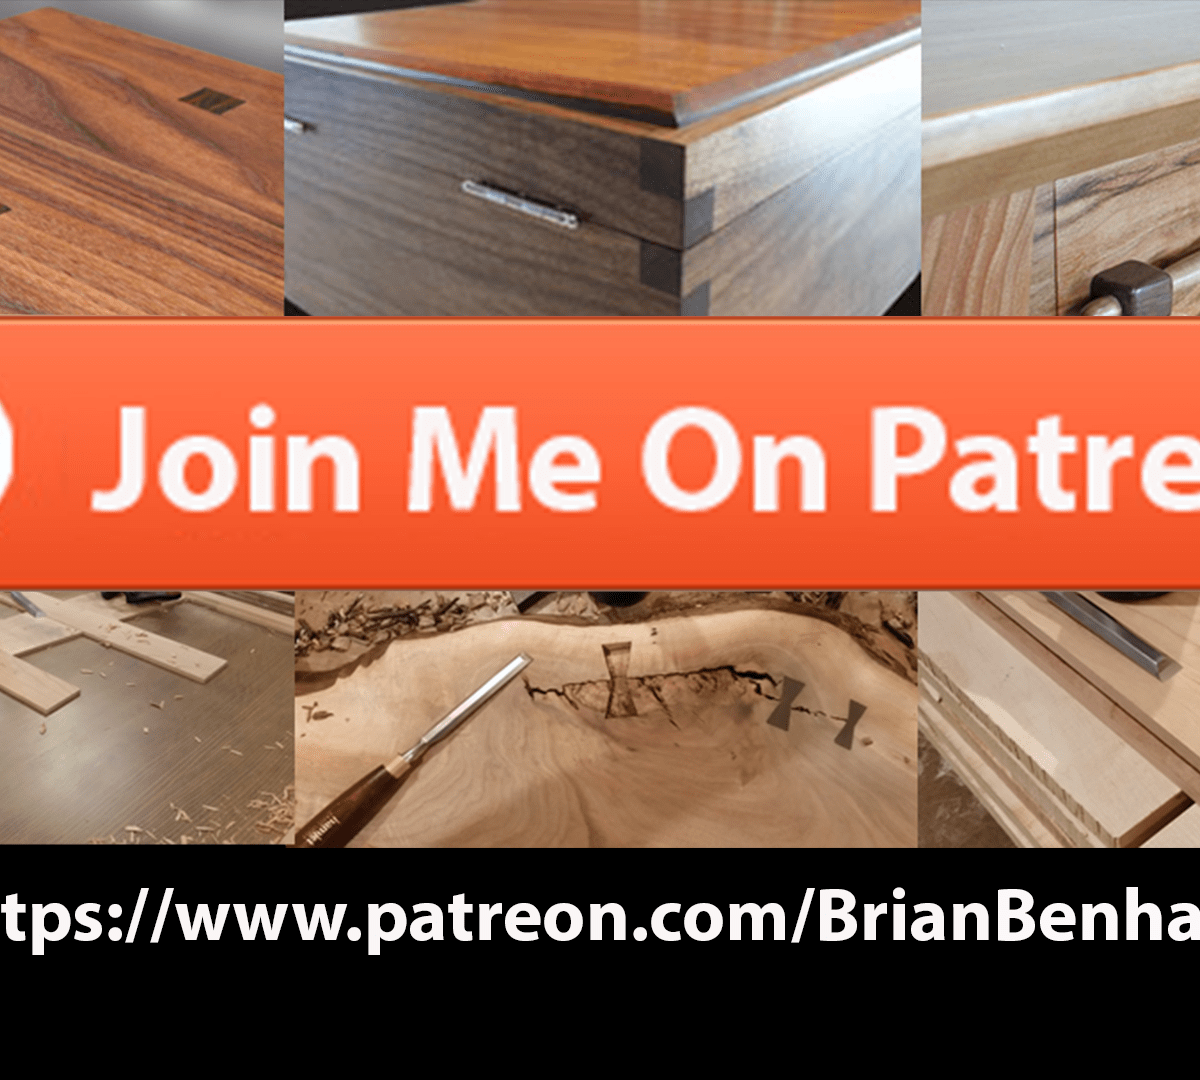 Brian Benham on Patreon